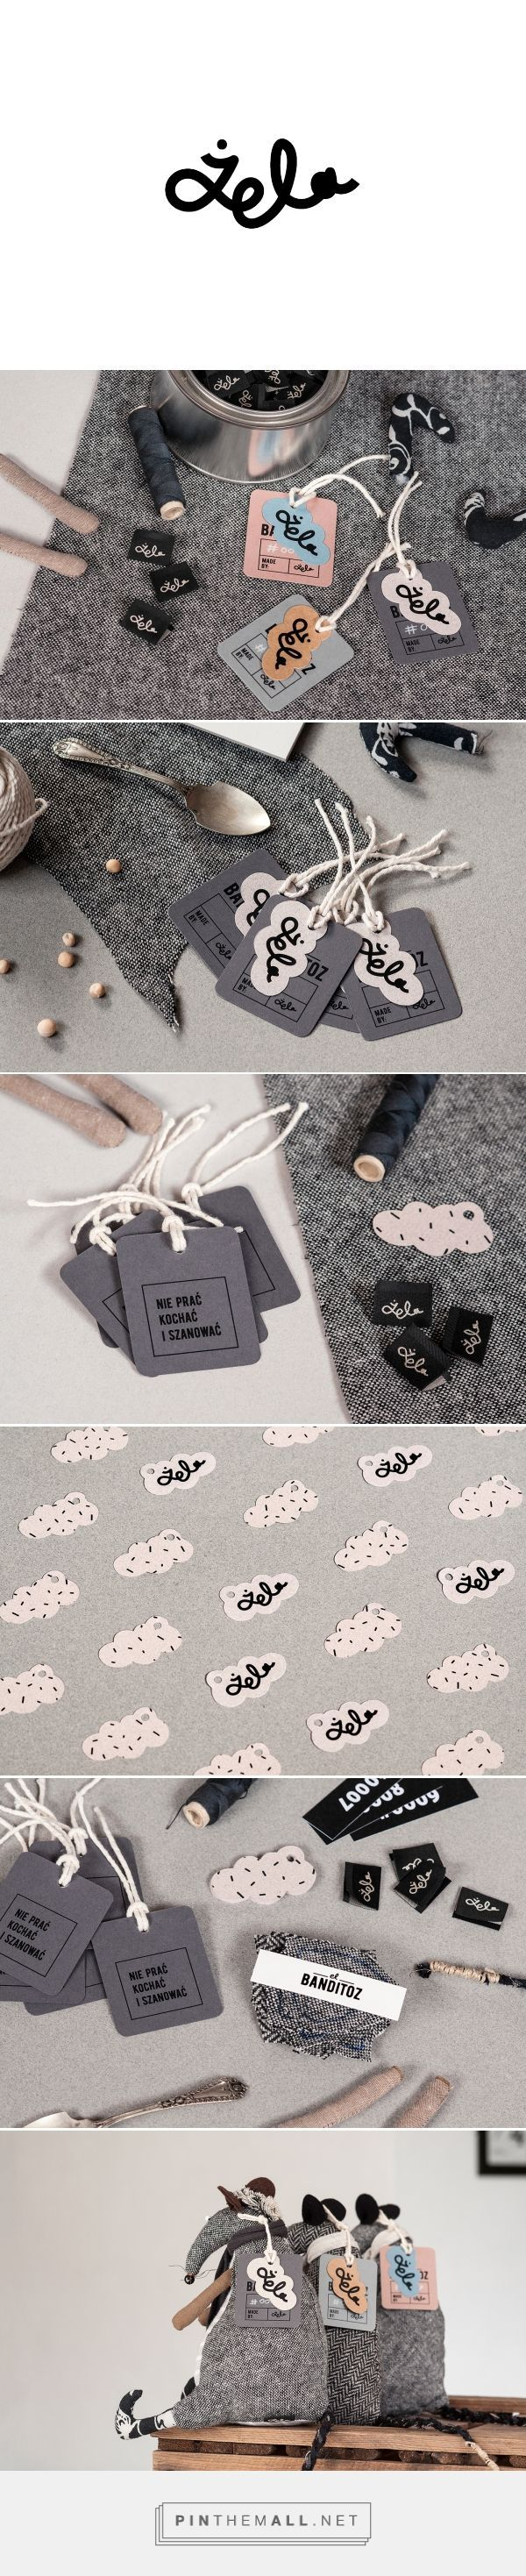 ŻELA | branding on Behance by Wel, Gdańsk, Poland curated by Packaging Diva PD. The cutest handmade toys, tags and labels. Branding, Graphic Design, Toy Design.